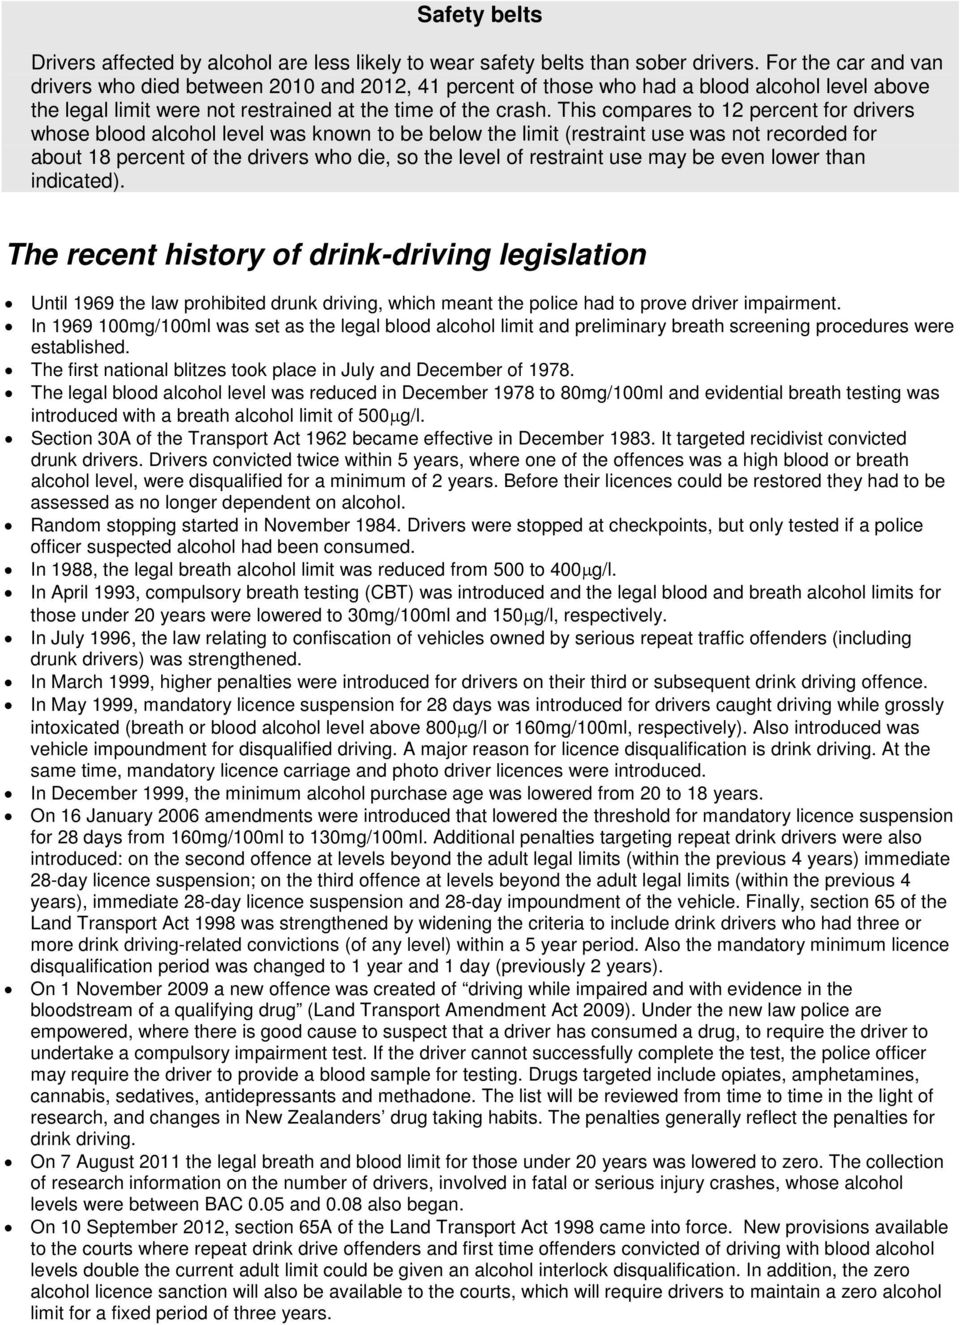 This compares to 12 percent for drivers whose blood alcohol level was known to be below the limit (restraint use was not recorded for about 18 percent of the drivers who die, so the level of